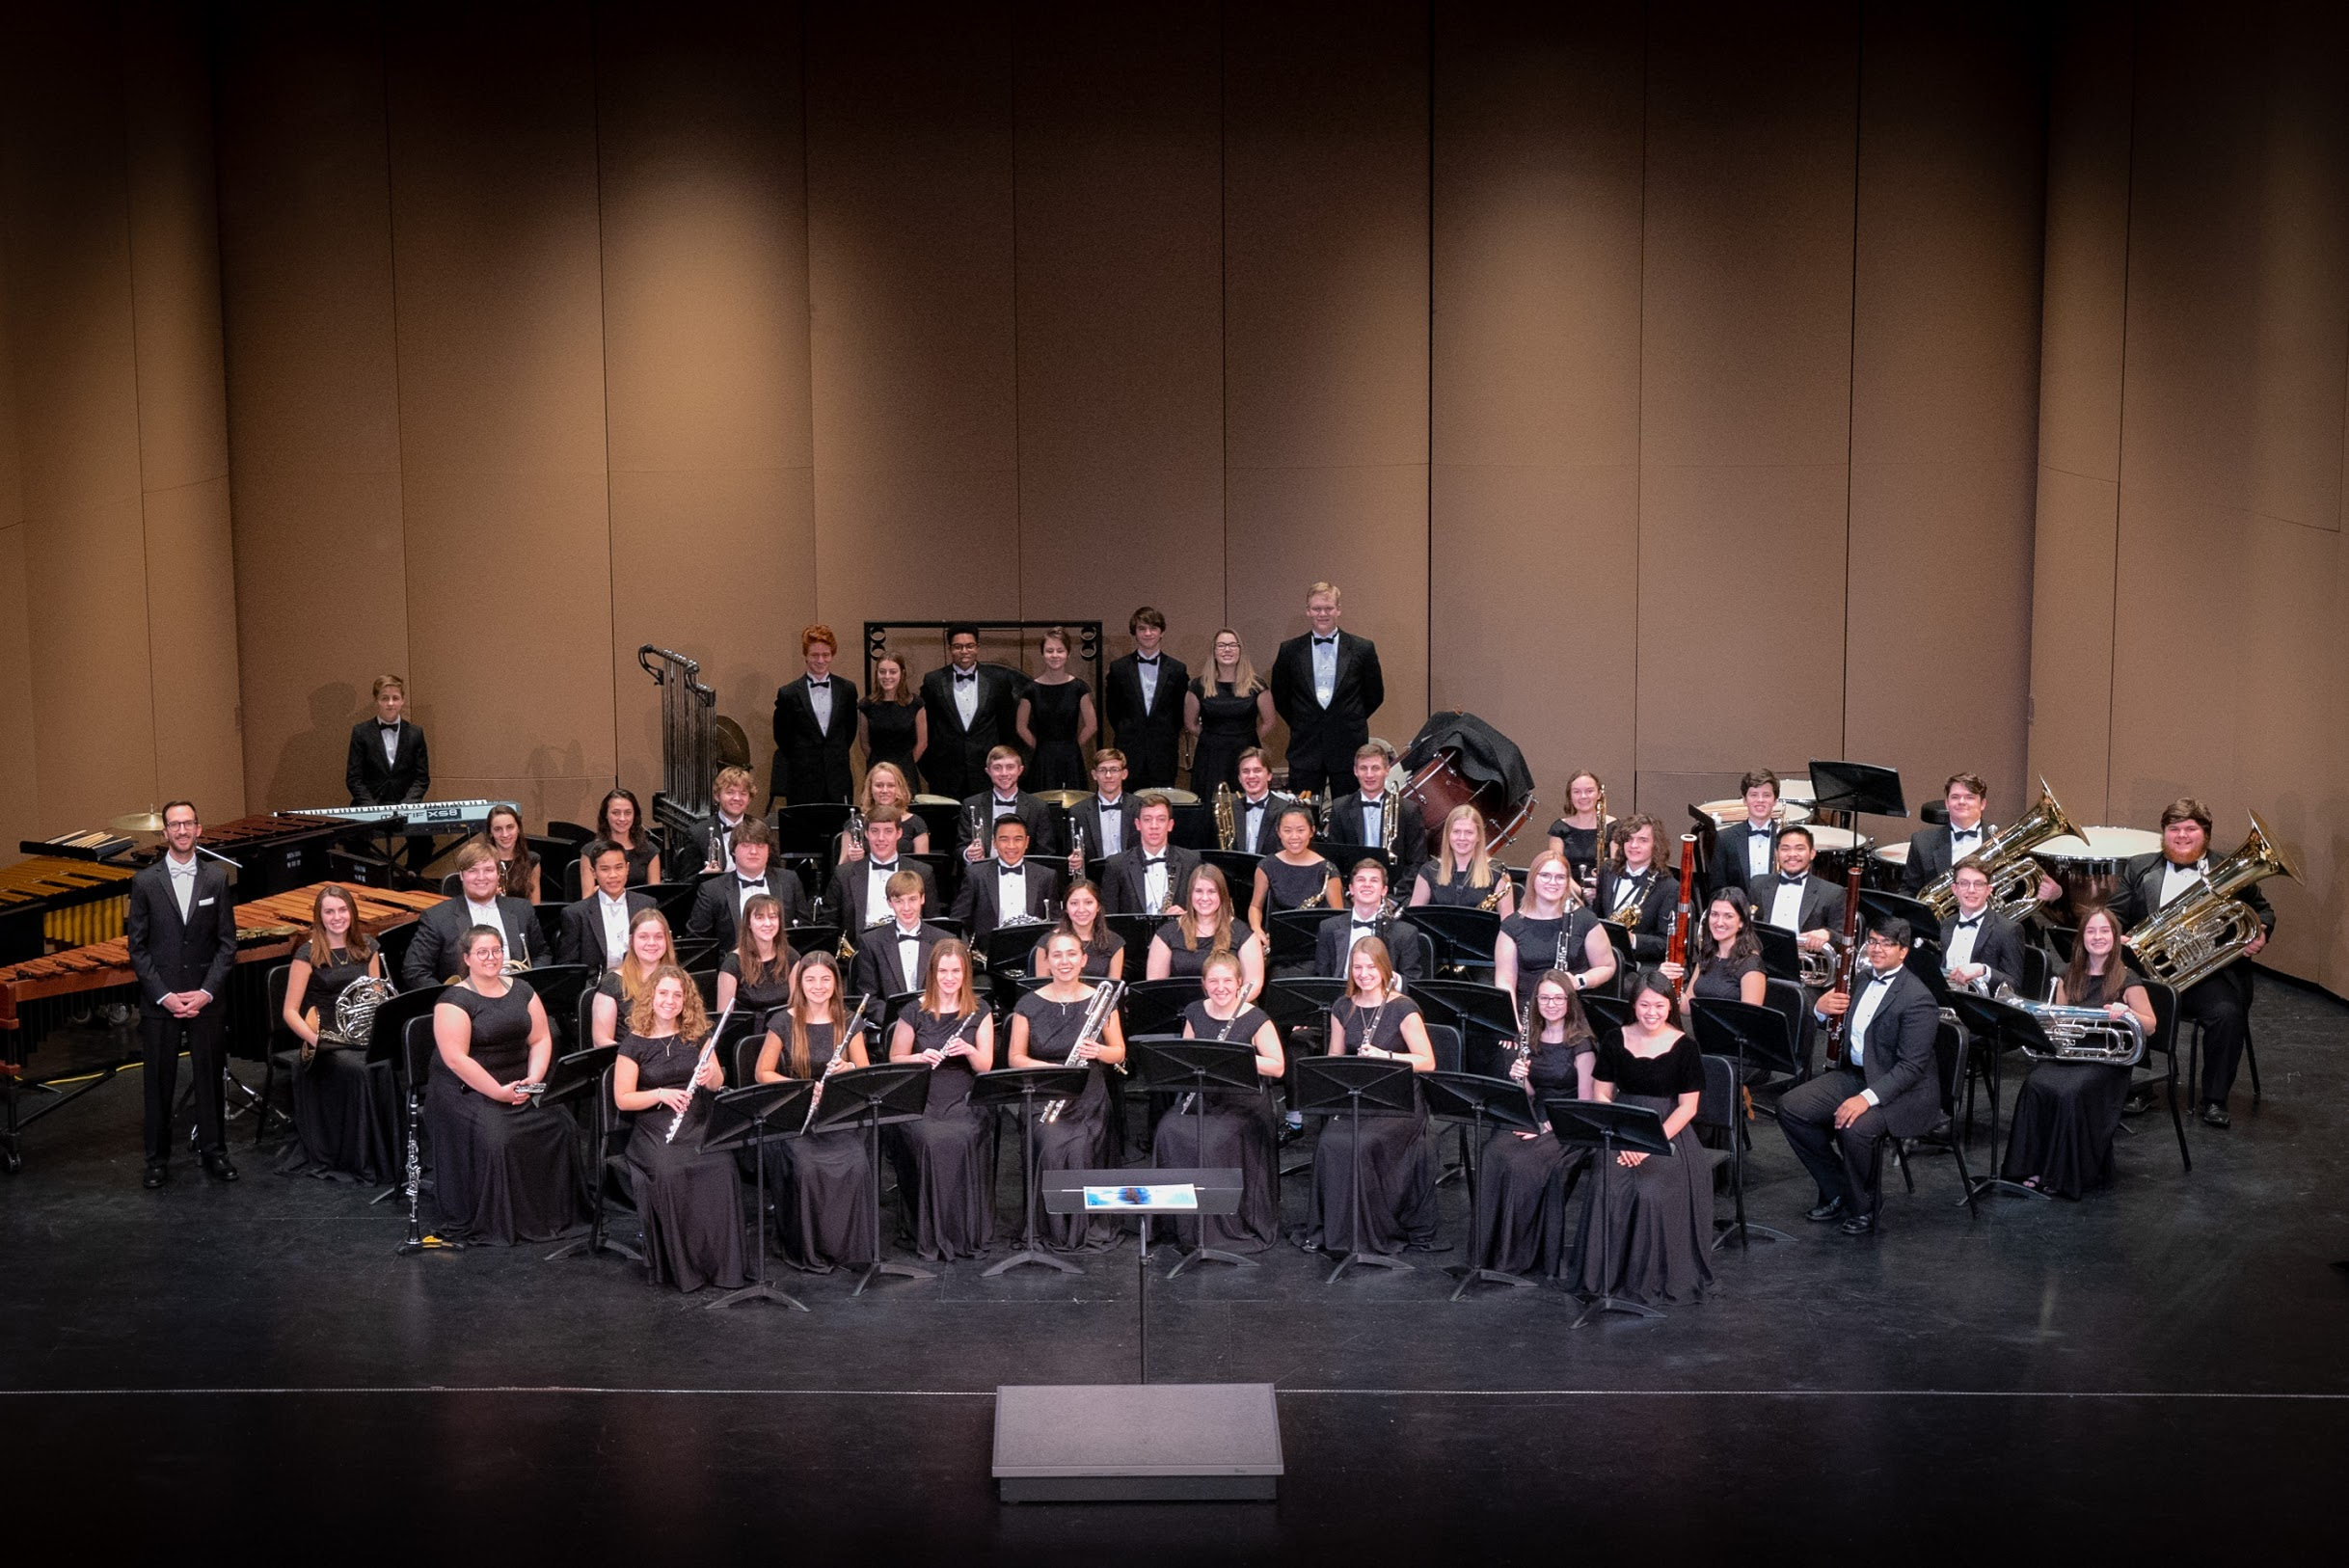 The Bentonville Wind Ensemble comprises of students 9 - 12 and is by audition only. The Bentonville Wind Ensemble performs collegiate level repertoire and is the flagship of the Bentonville Band Program.